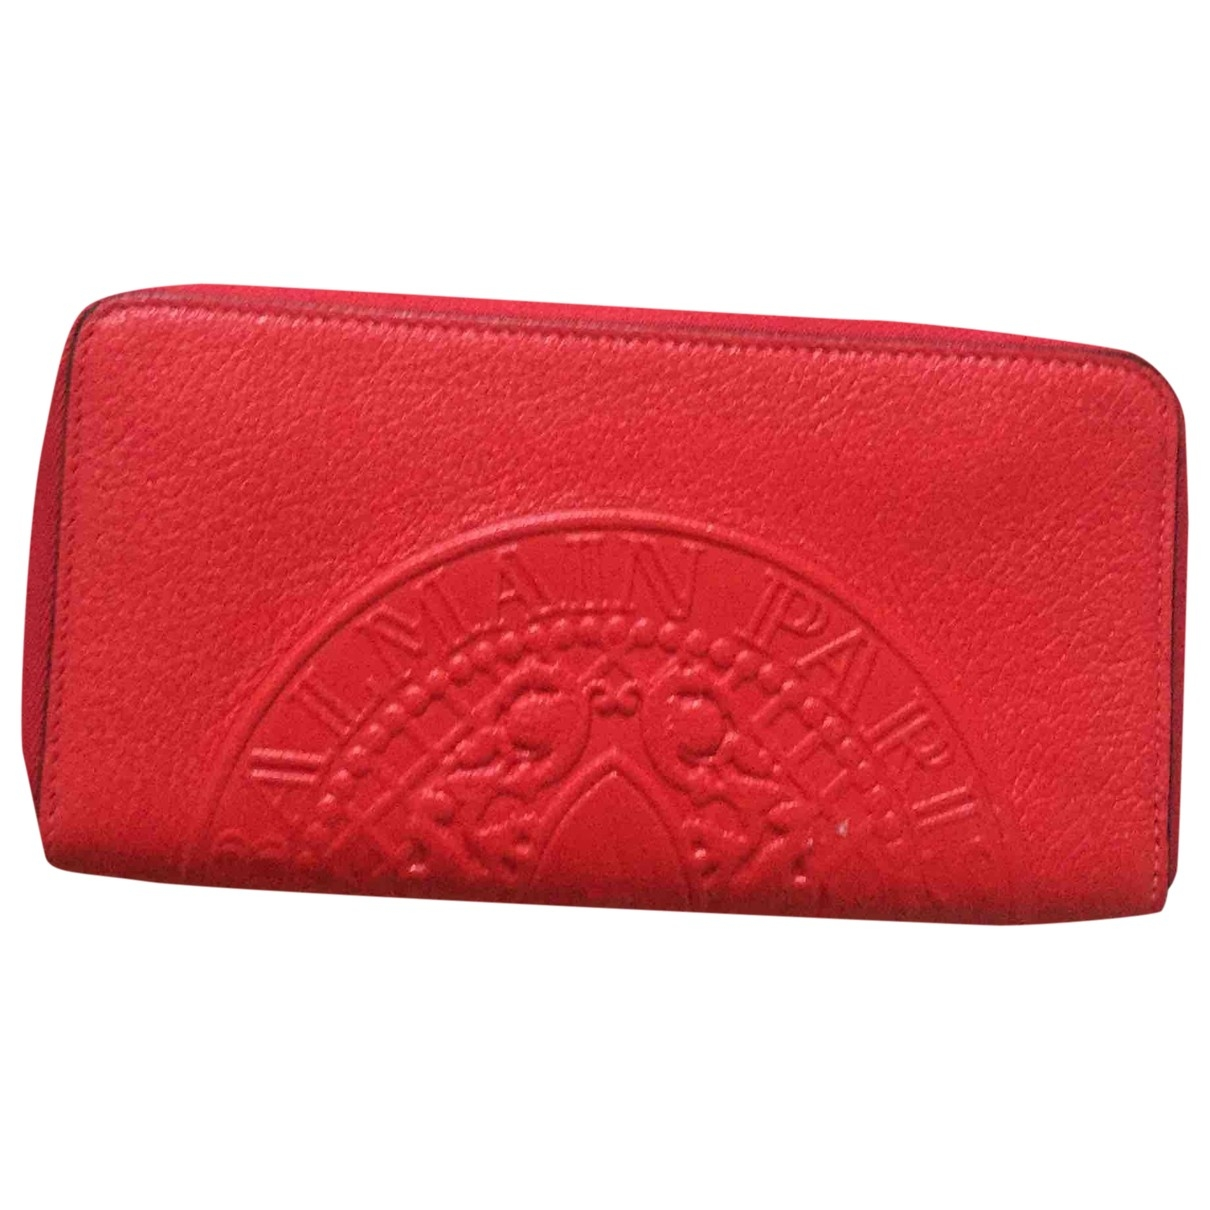 Balmain \N Red Leather wallet for Women \N